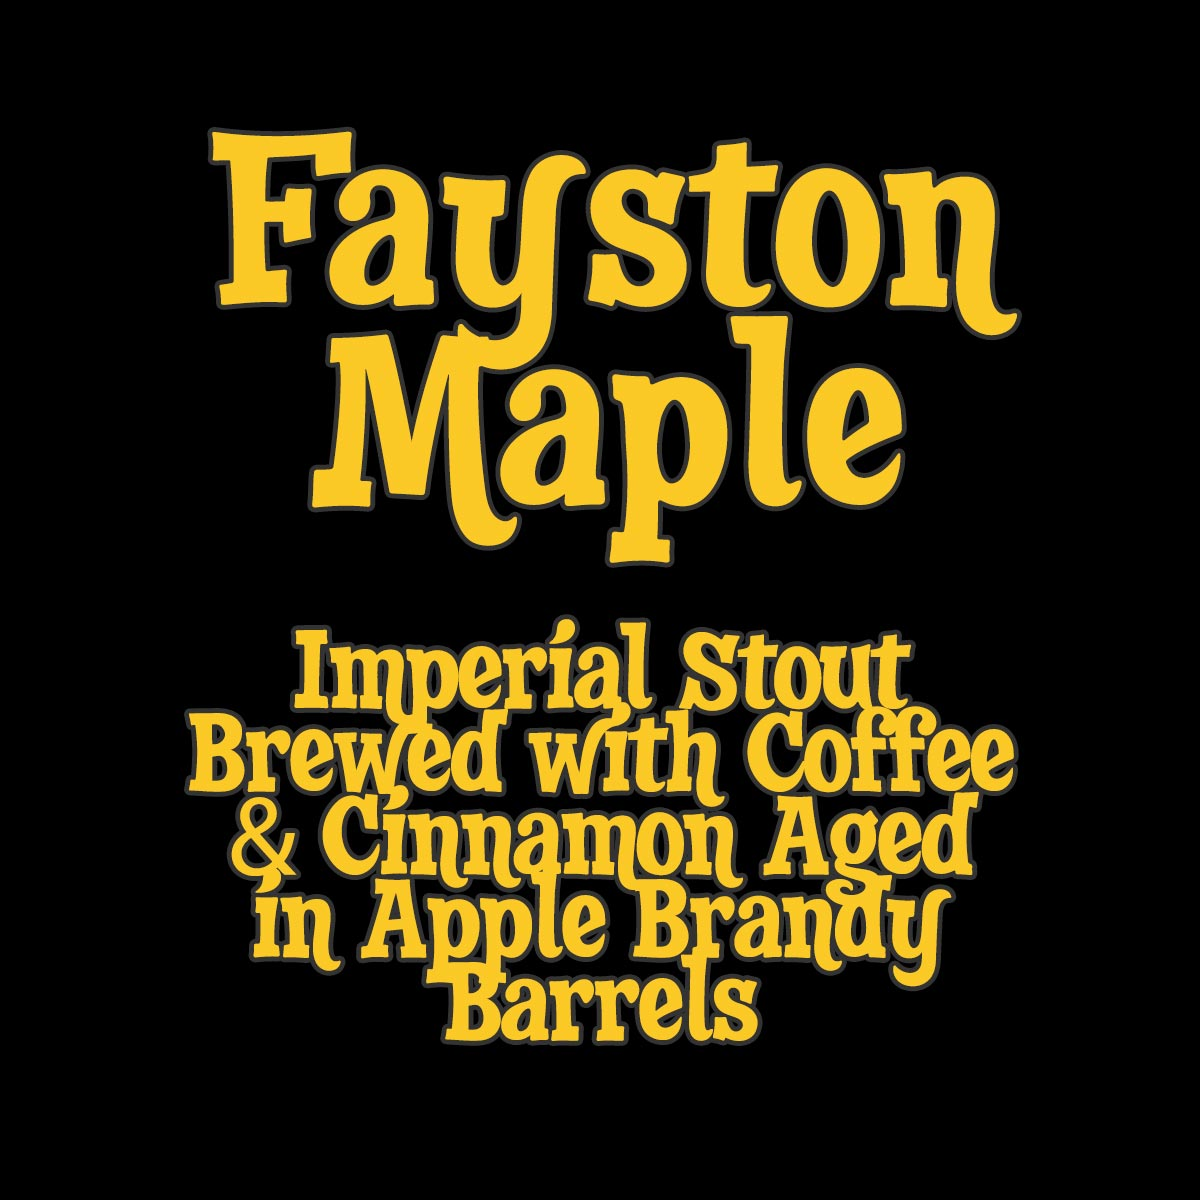 Fayston Maple brewed with Coffee & Cinnamon Aged in Apple Brandy Barrels